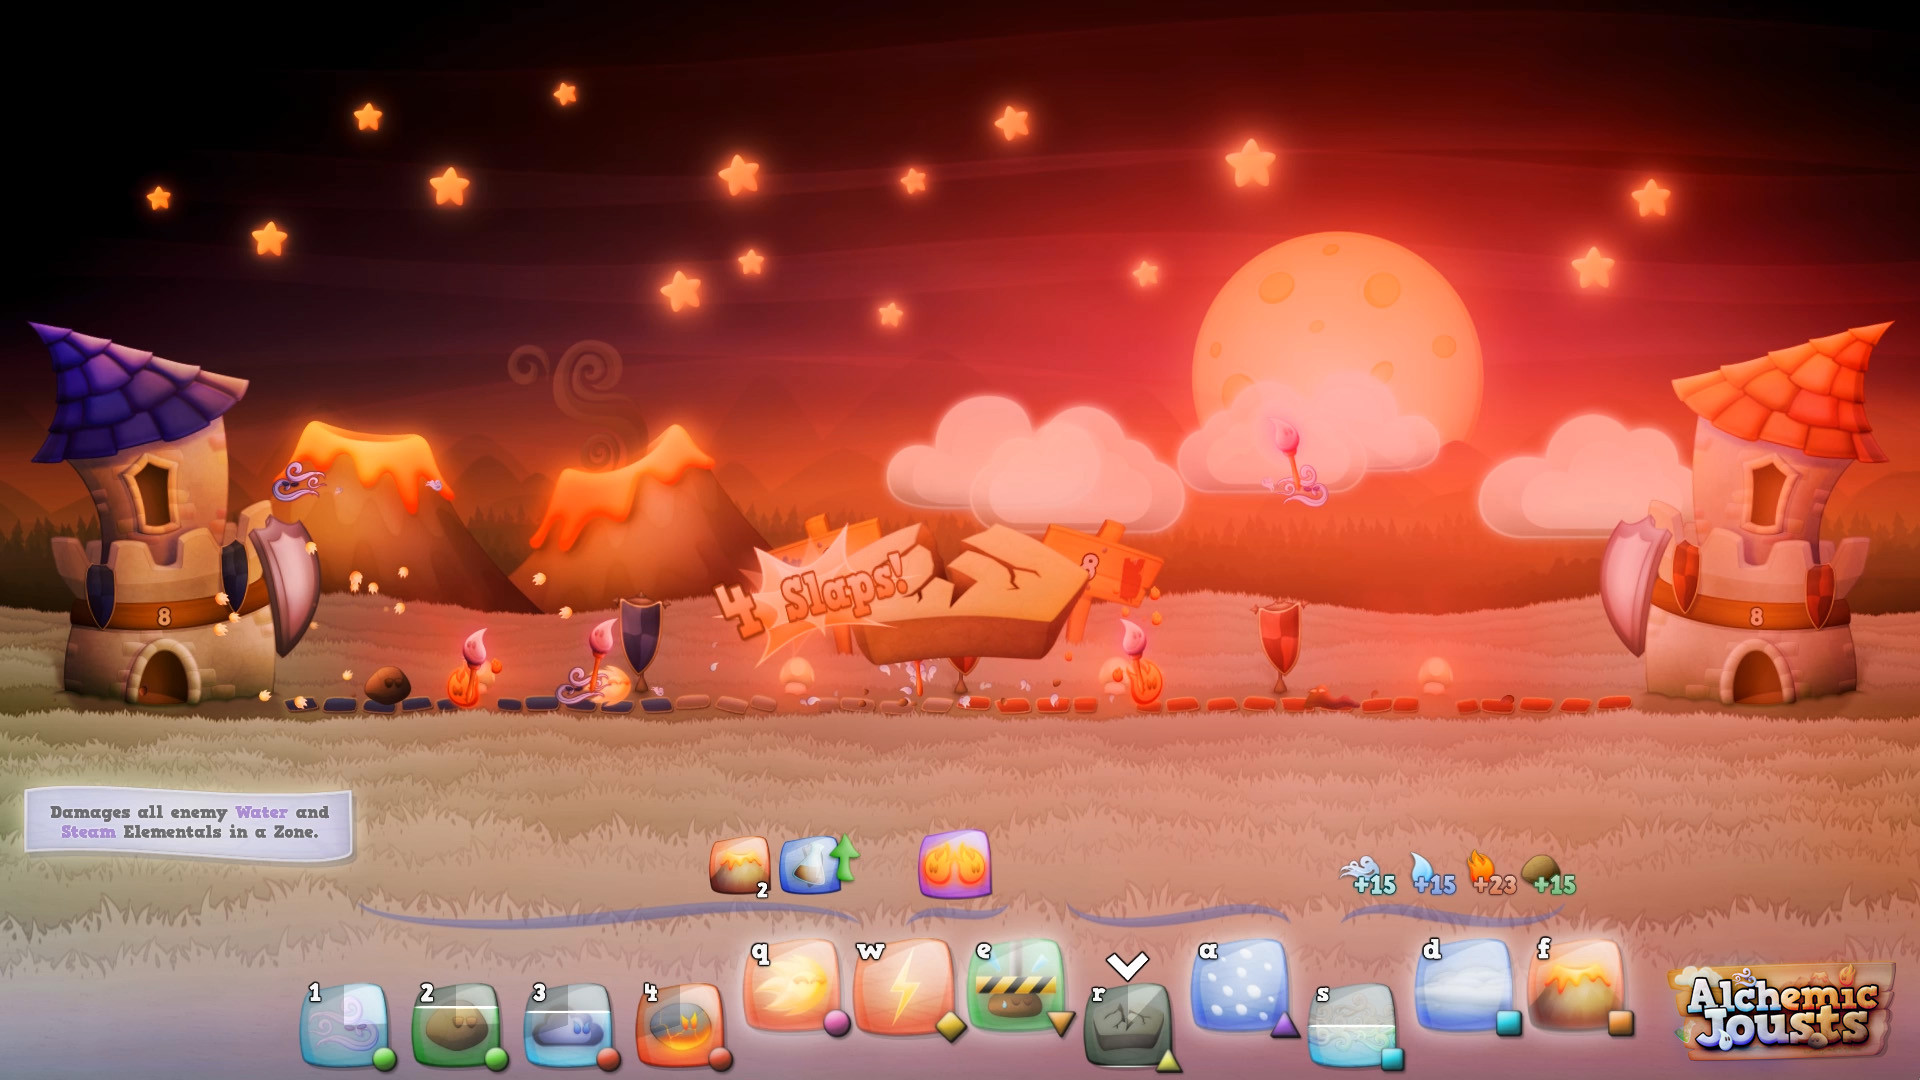 Alchemic Jousts Screenshot 3